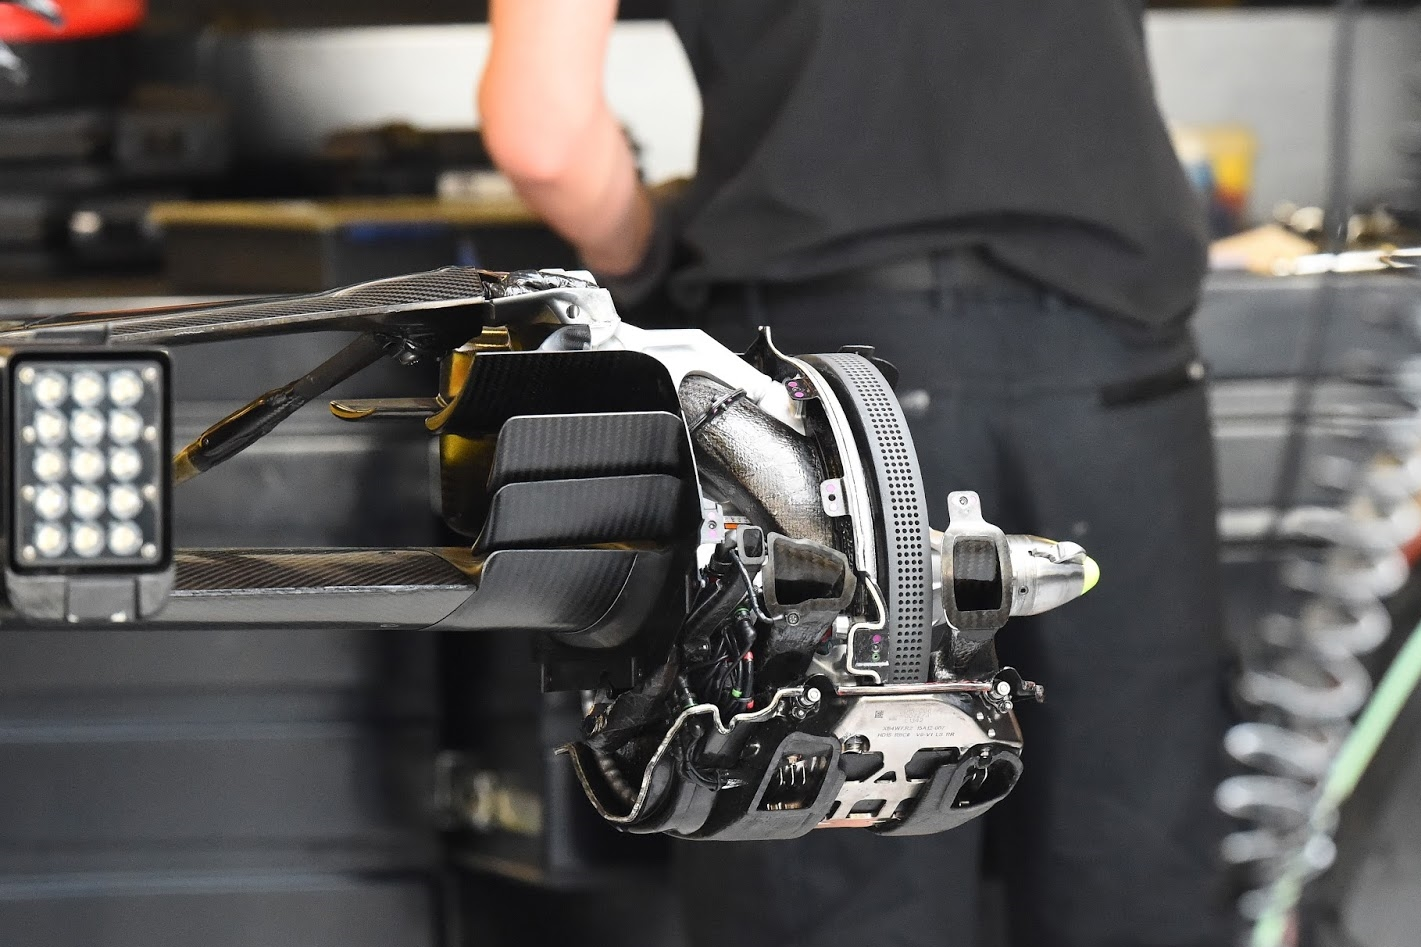 mercedes-rear-brake-duct-abu-dhabi-2015